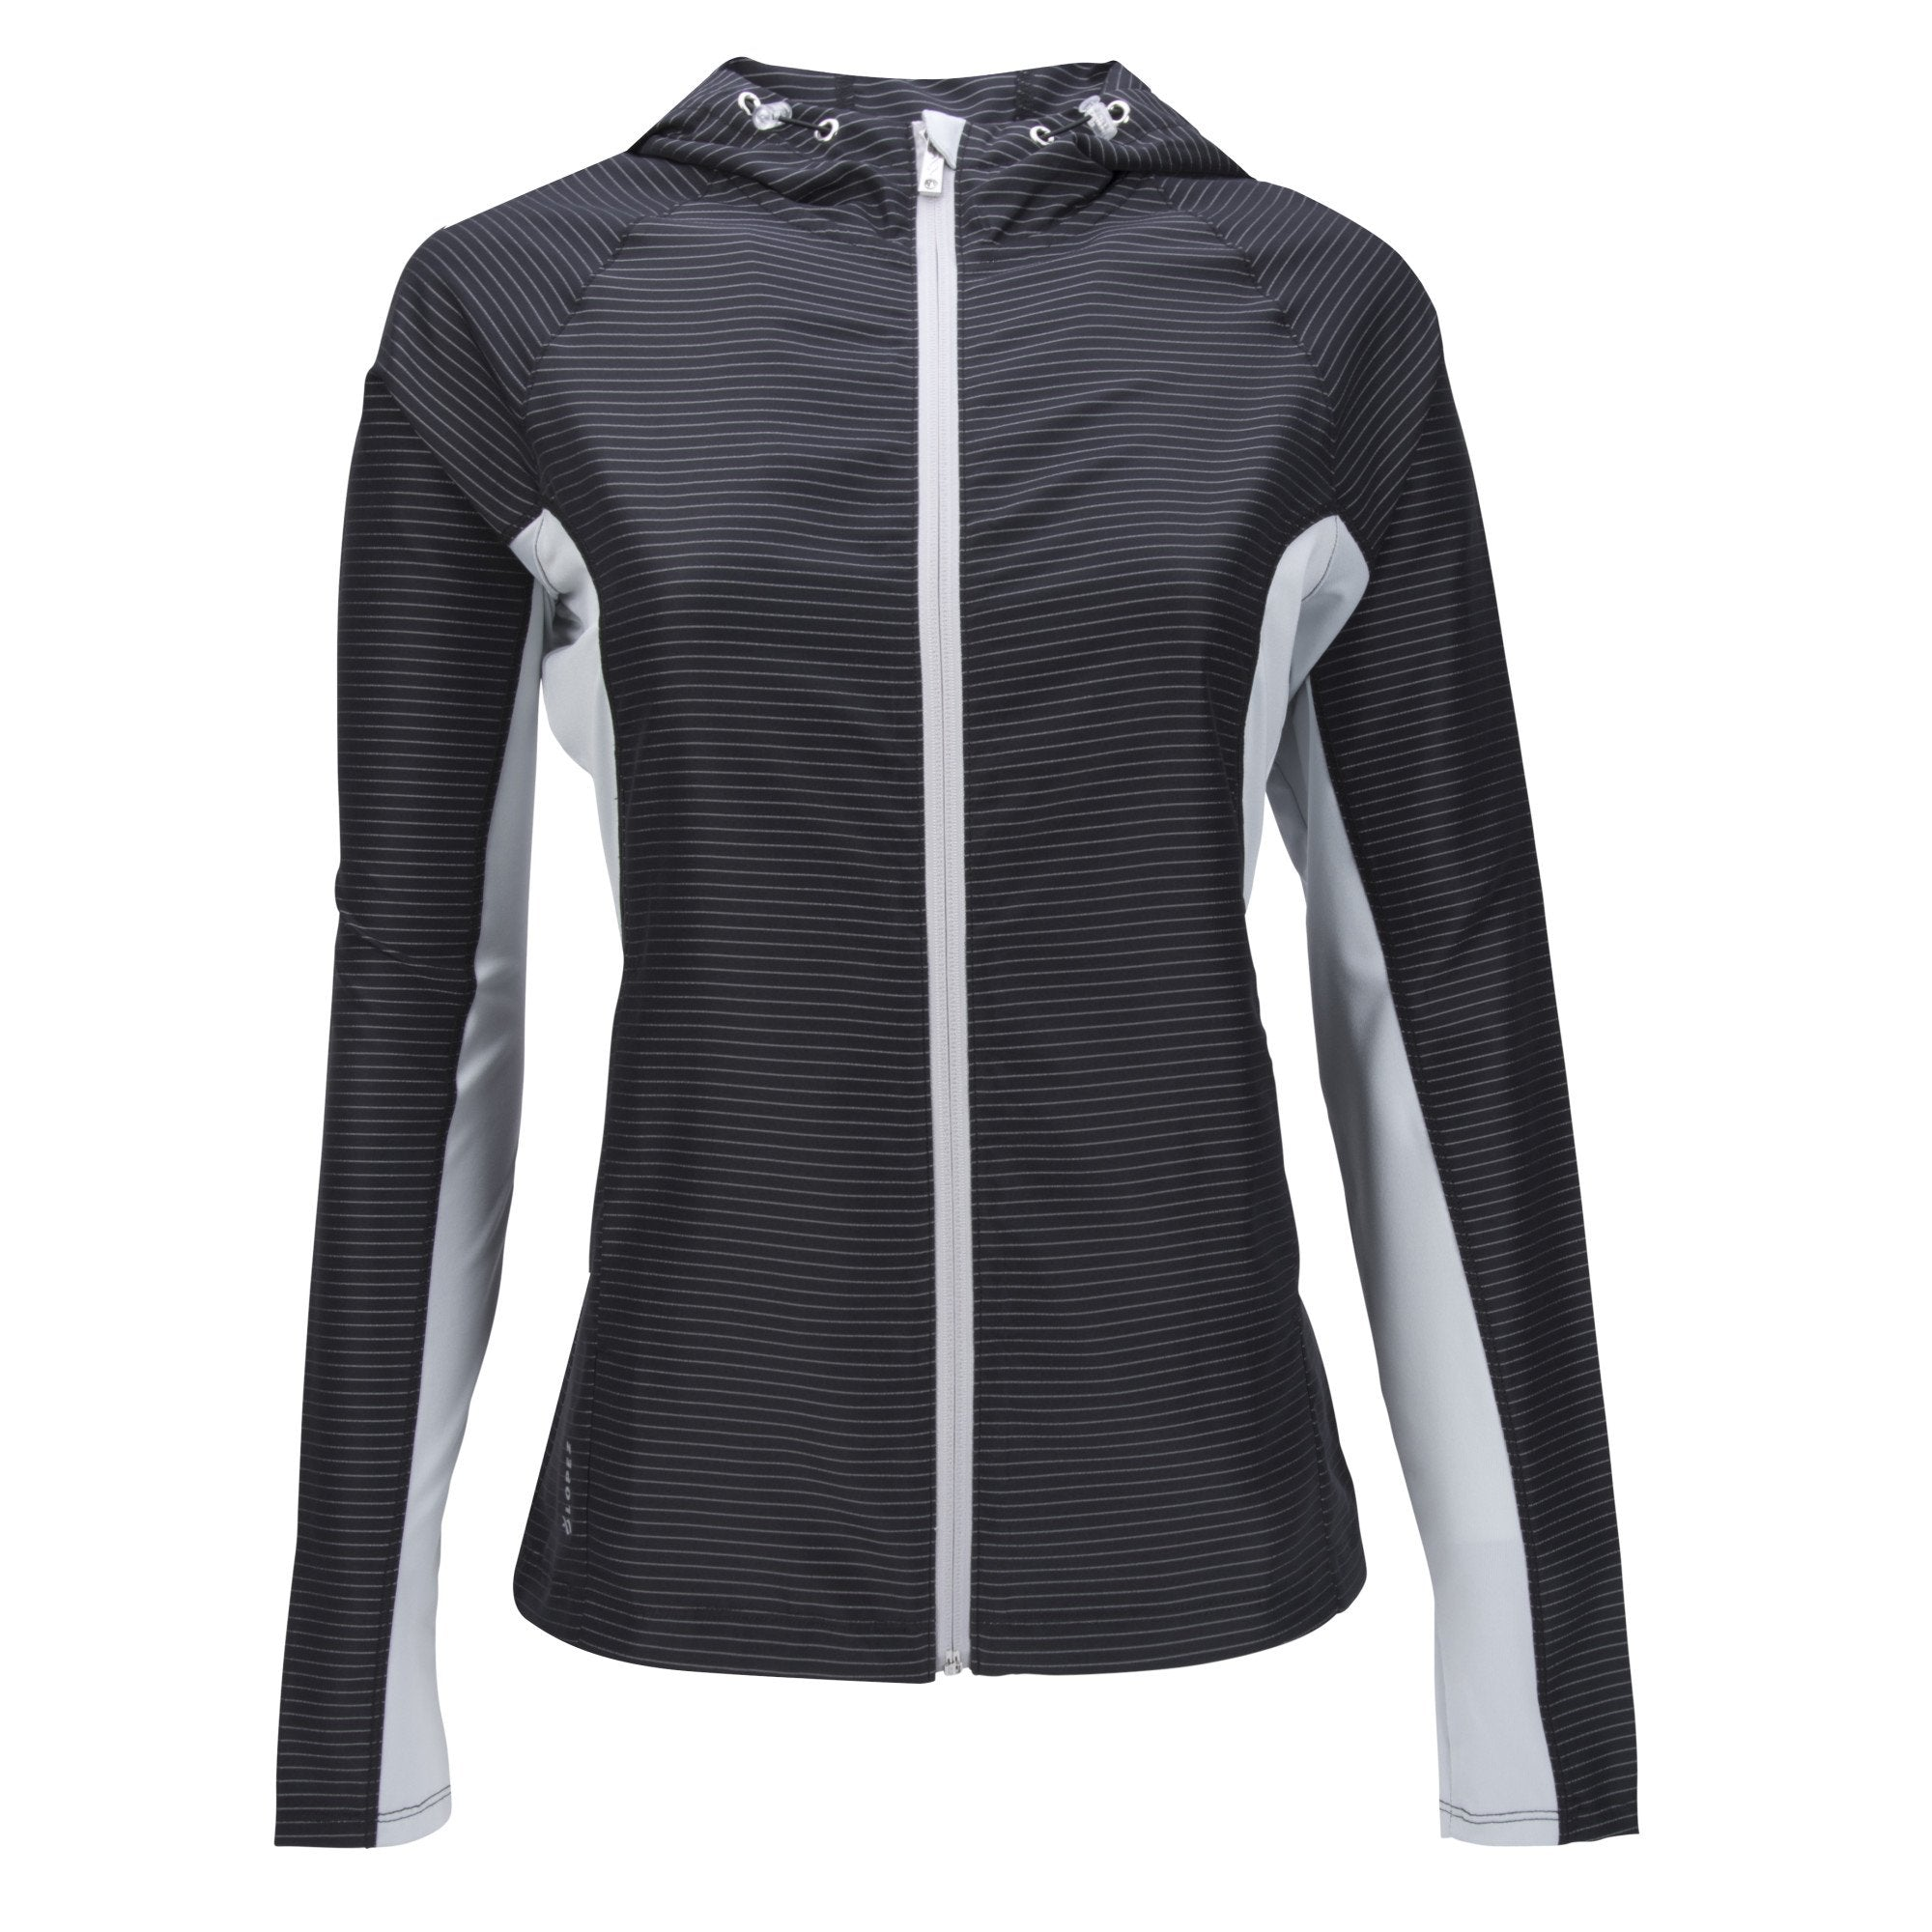 Nancy Lopez Pivot Jacket Black Multi